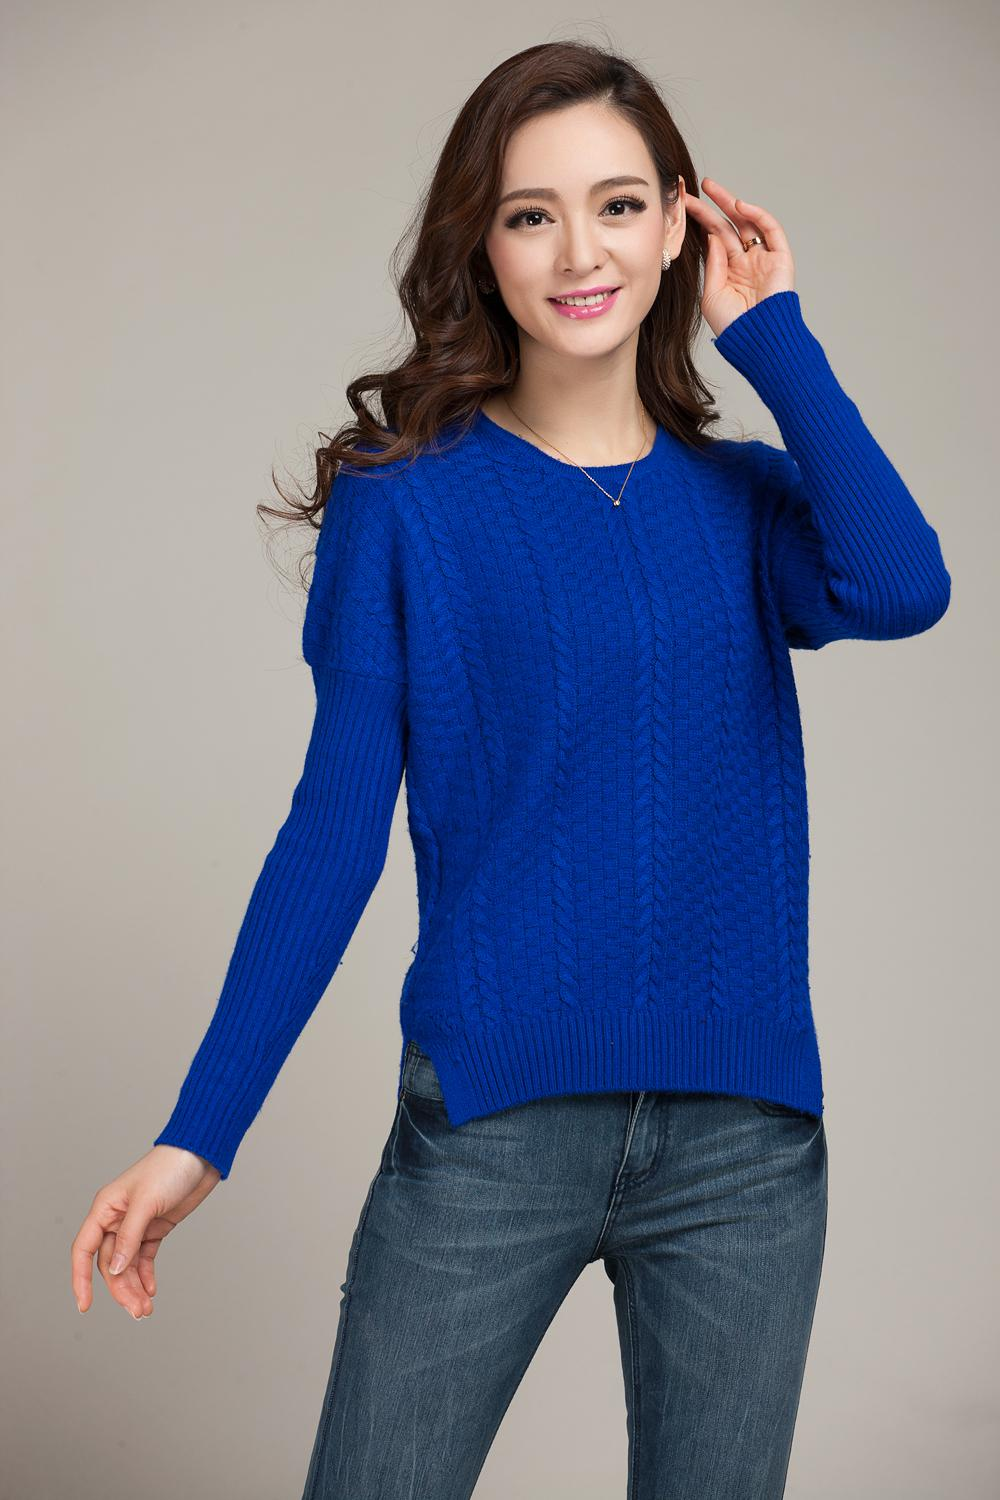 2018 New Spring Women'S Sweater Cashmere Sweater O Neck Long ...